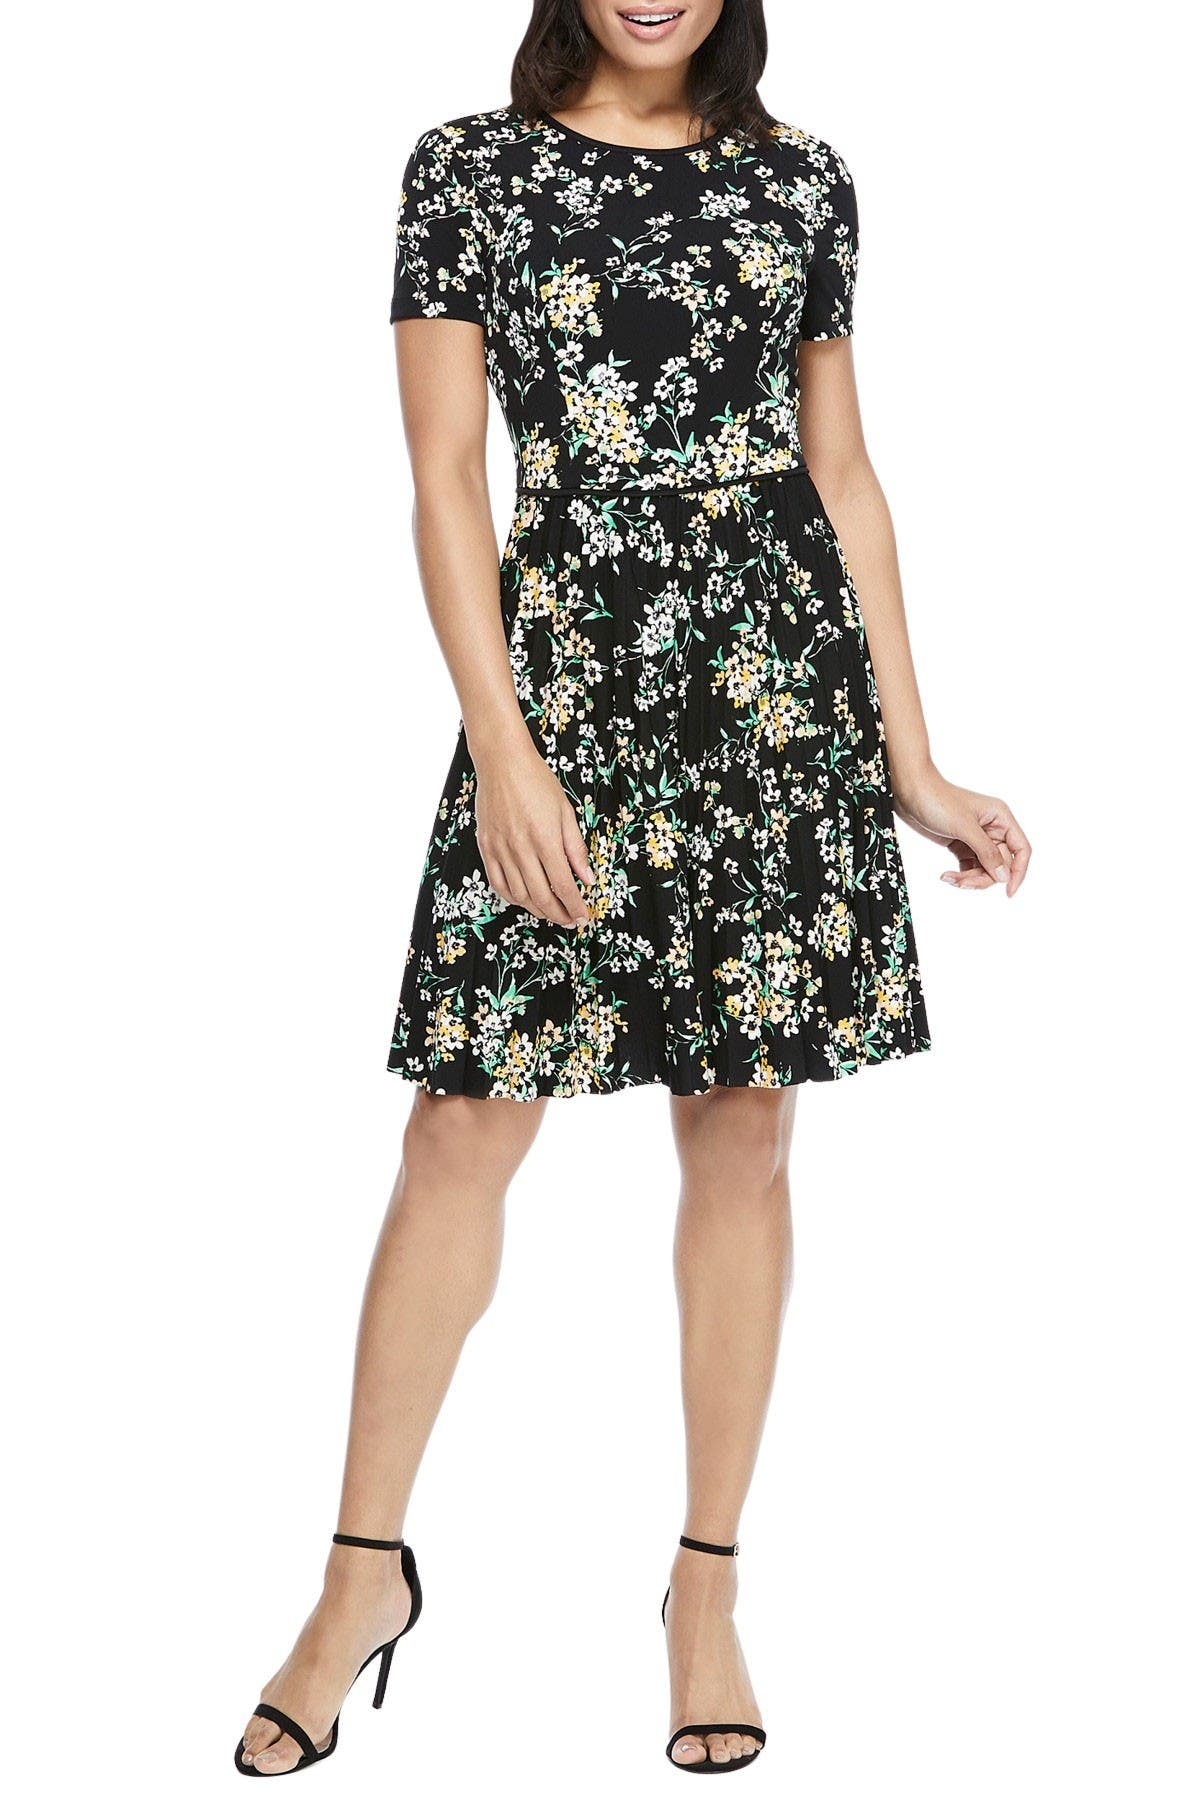 Image of Maggy London Floral Pleated Skirt Dress